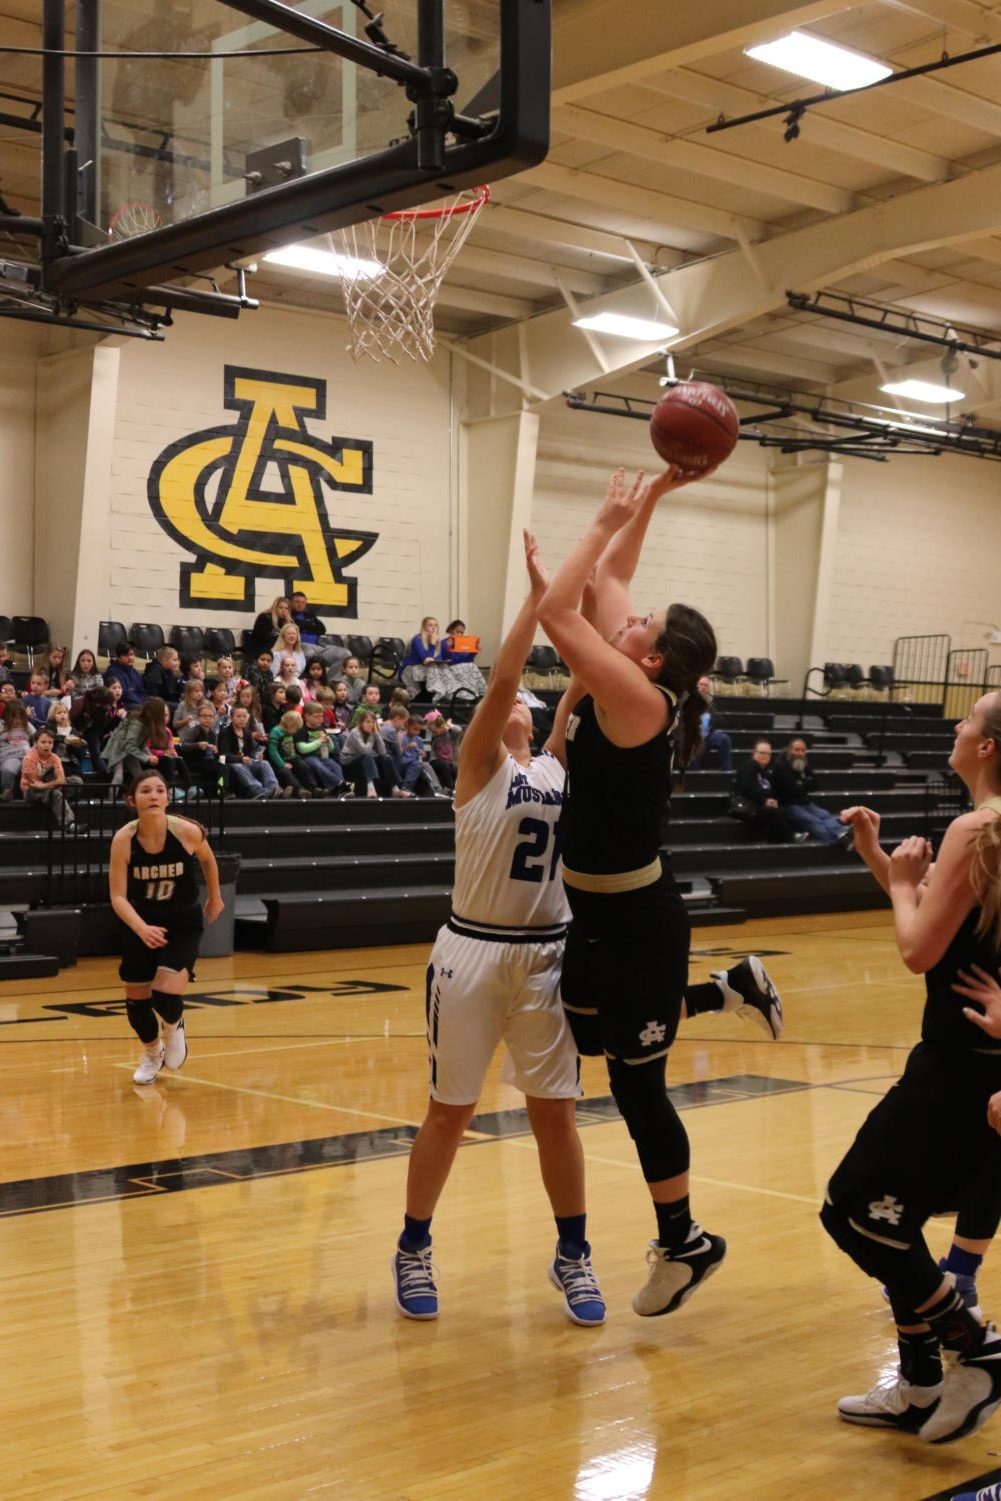 During last week's Wildcat Classic, junior Shaylee Watson goes up for a layup while junior Maggie Coates prepares to assist. The Ladycats defeated City View in the first game of the tournament.